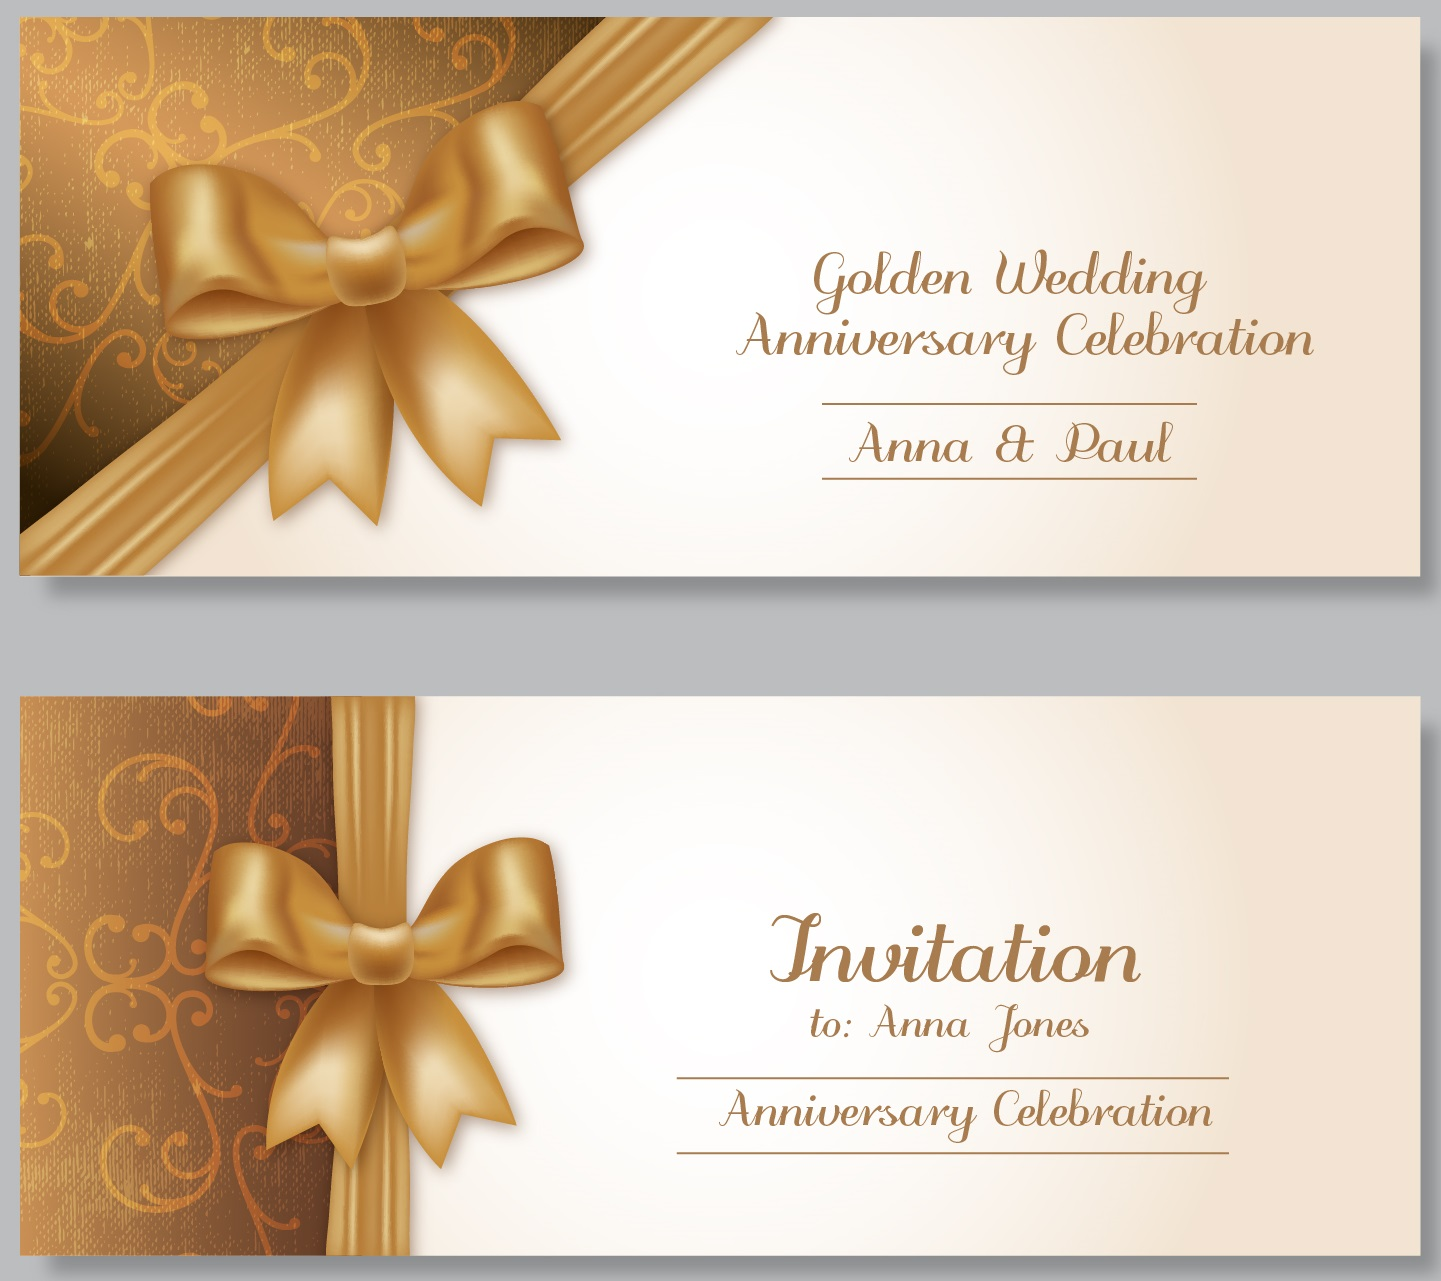 9 free sample anniversary party invitation templates printable here is preview of another sample anniversary party invitation template created using ms word stopboris Choice Image